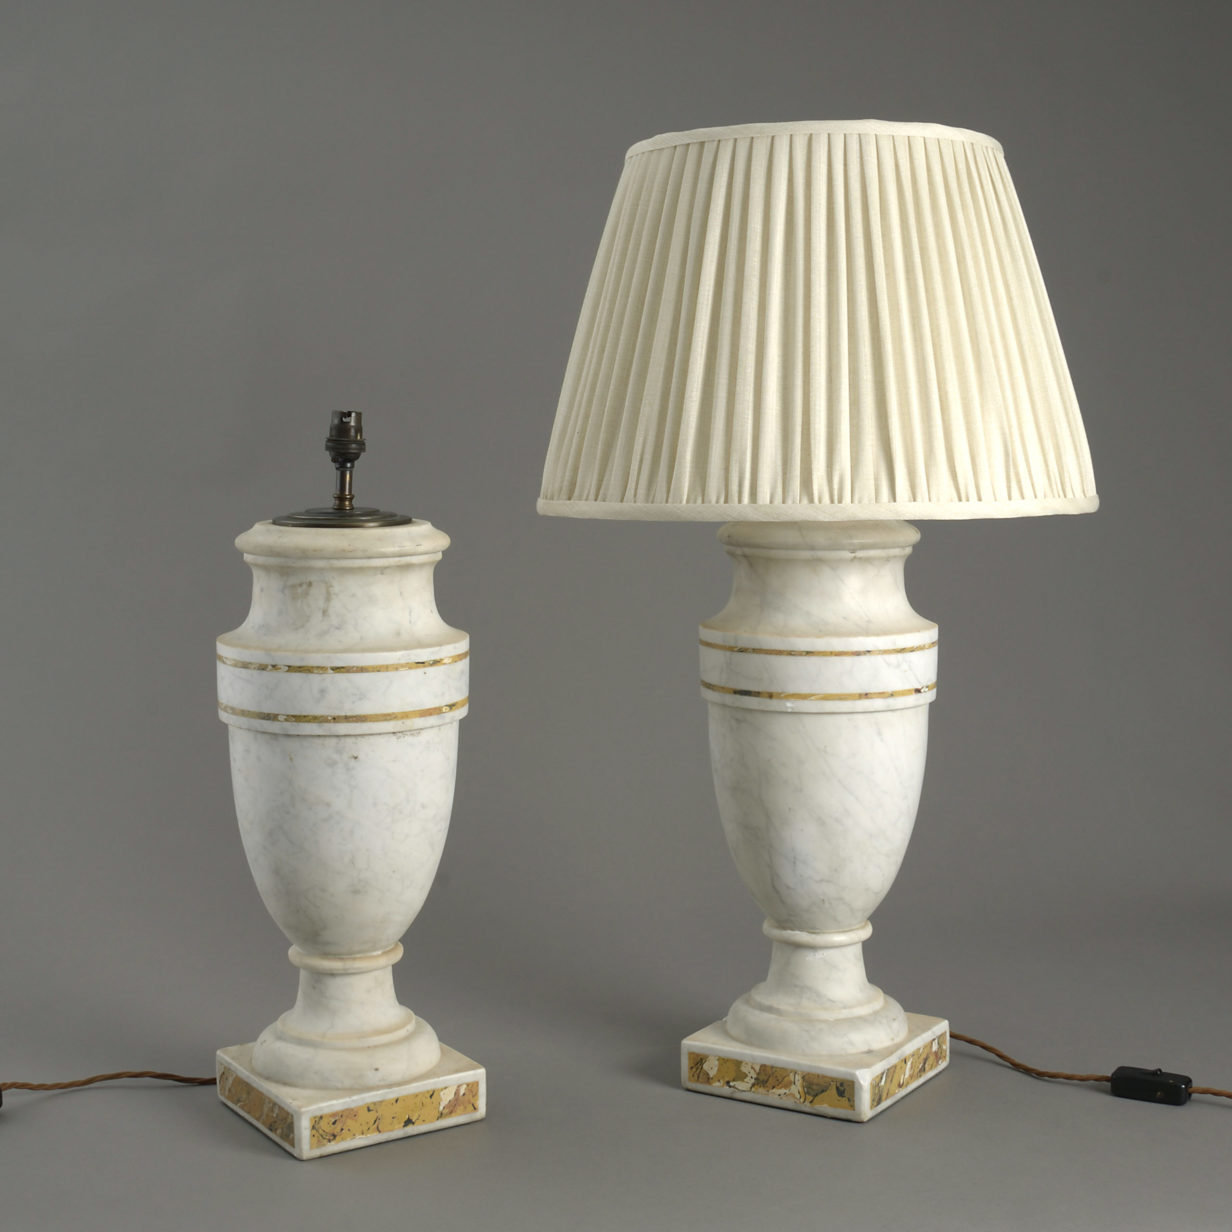 Pair of Marble Vase Lamps